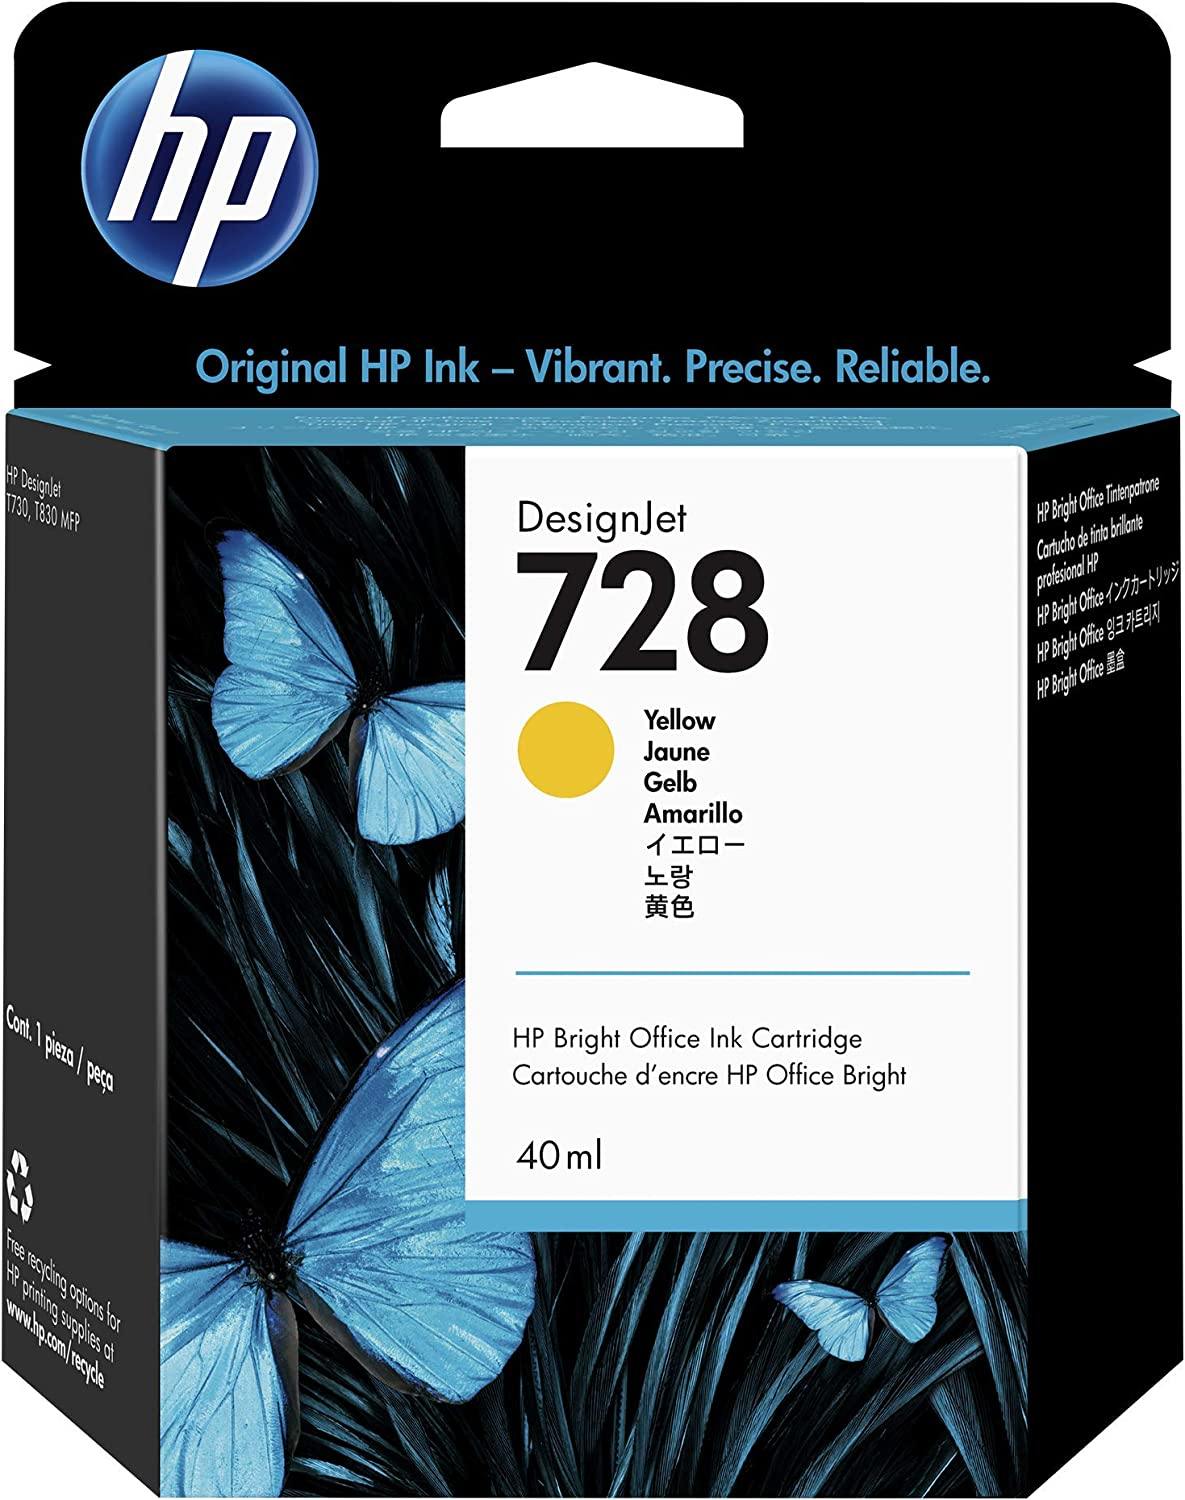 HP 728 Yellow 40-ml Genuine Ink Cartridge (F9J61A) for DesignJet T830 MFP & T730 Large Format Plotter Printers